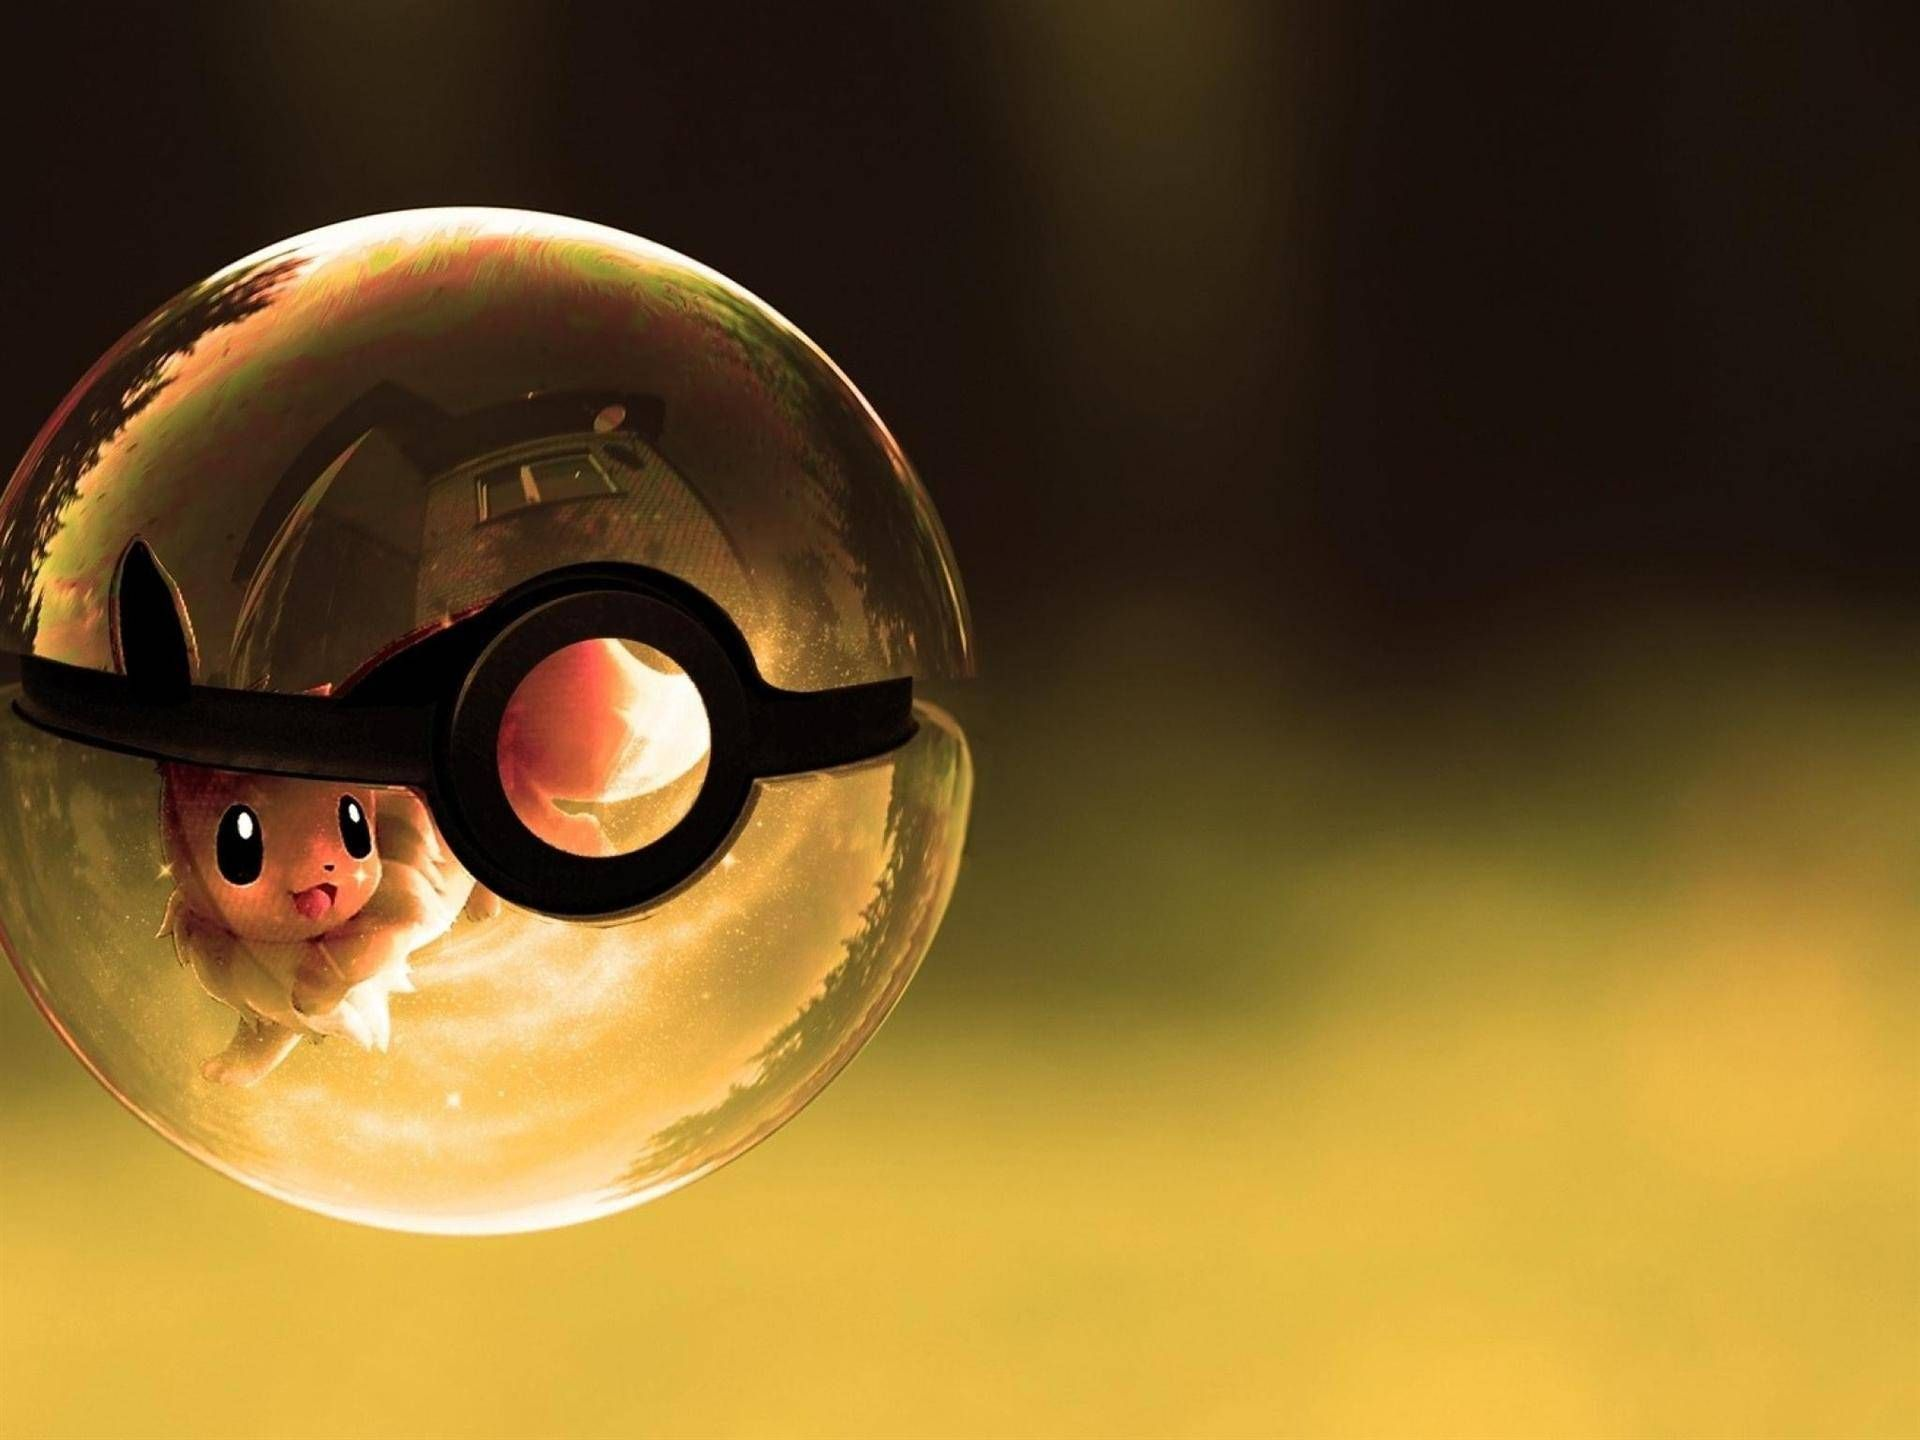 pokeball wallpaper pinterest - photo #6